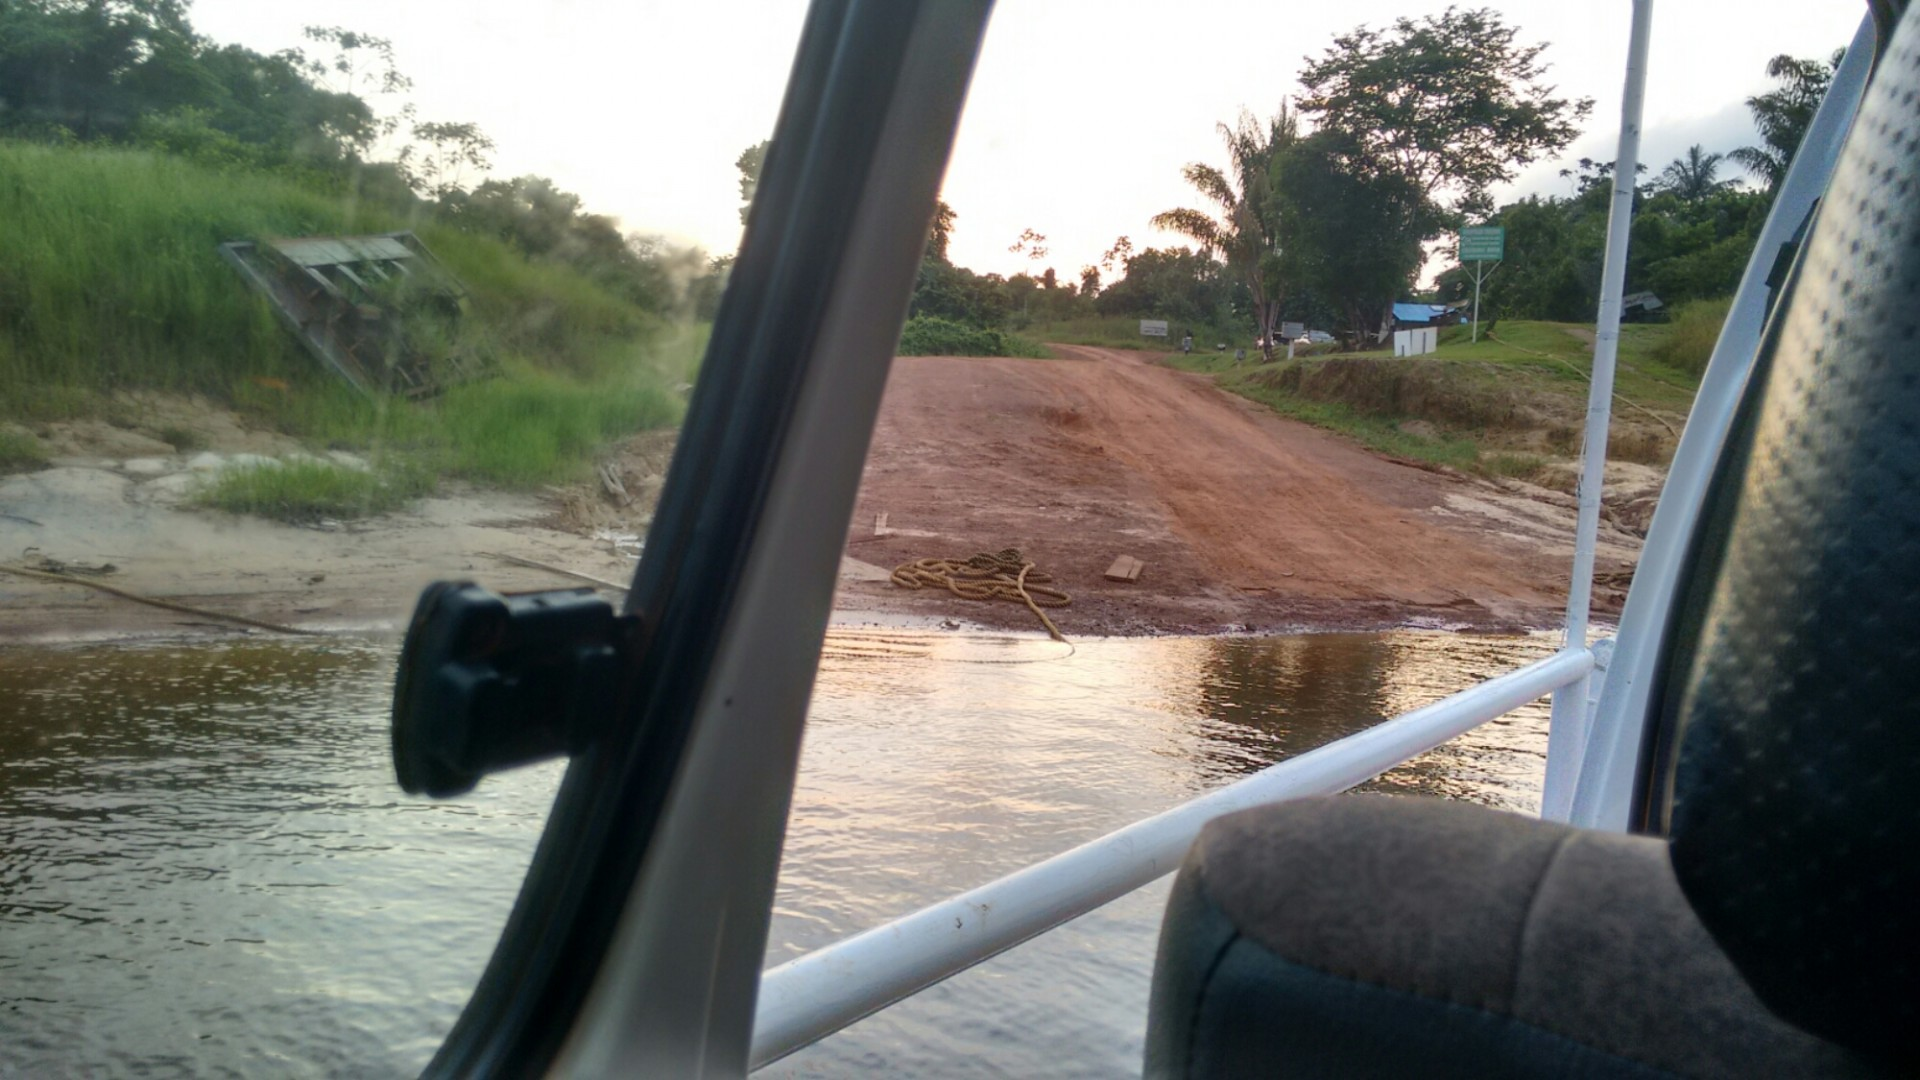 The Kurupukari river crossing. I was too tired to take good pictures.